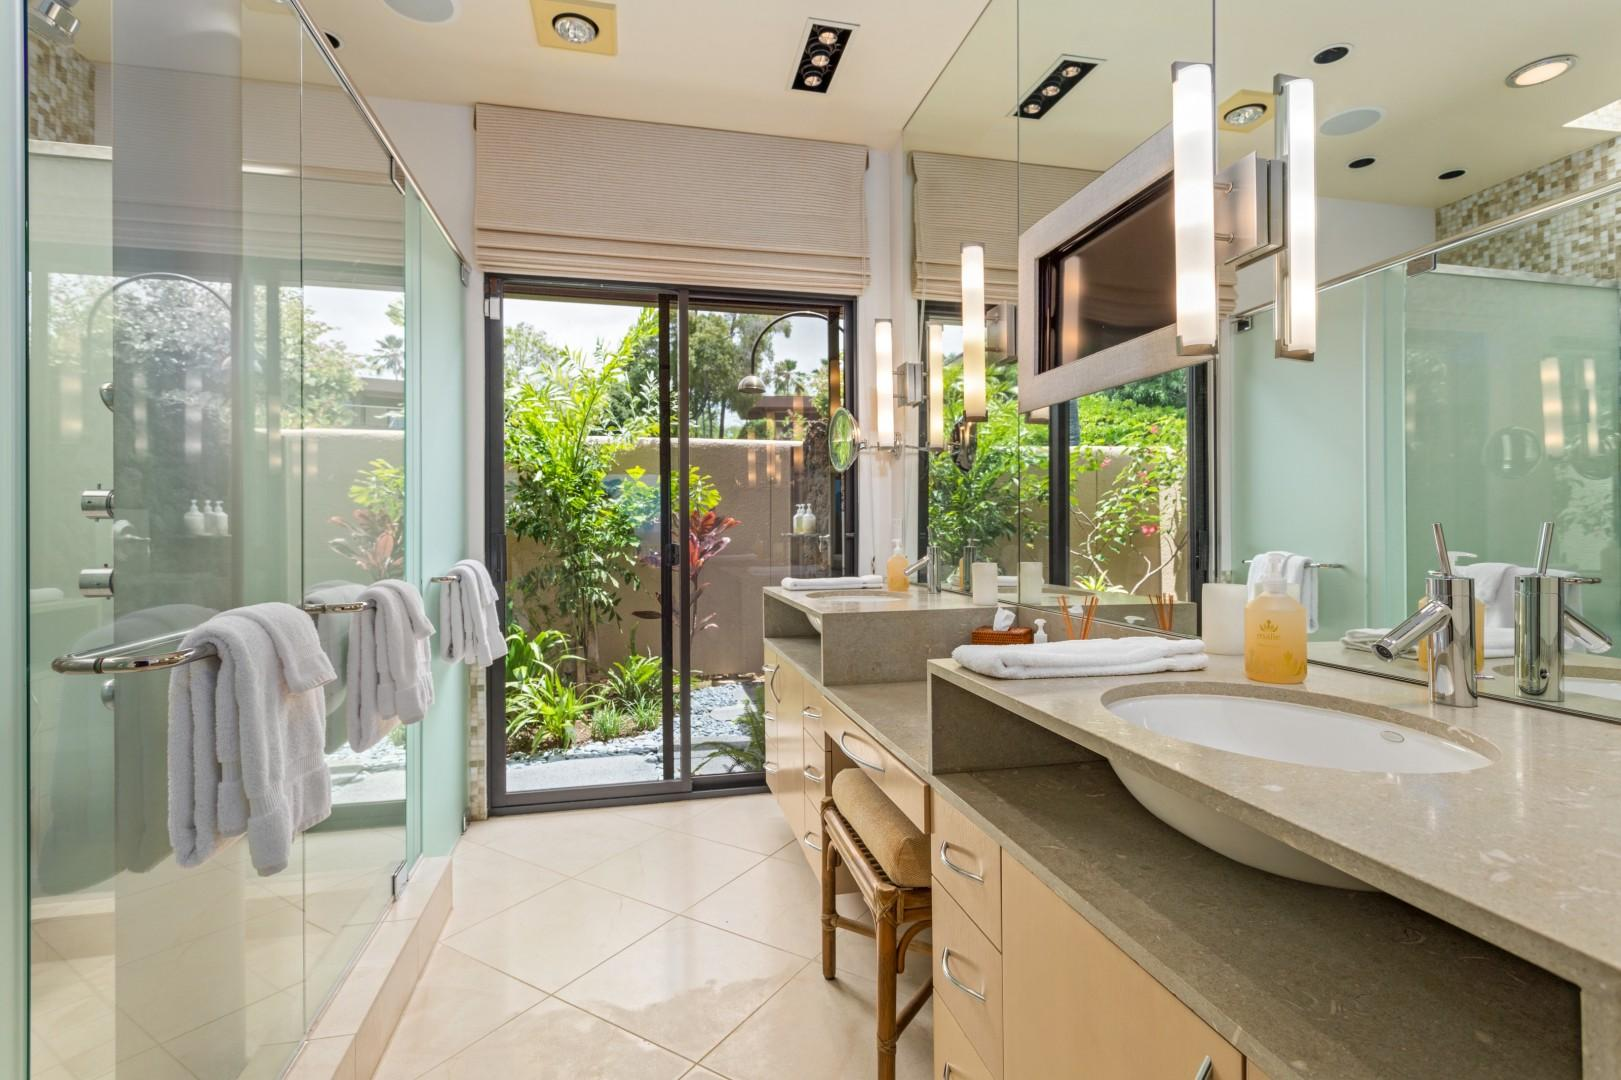 Master Bath w/Dual Vanity, Flatscreen TV, Privacy Commode, Walk-In Shower & Sliding Doors to Outdoor Shower Garden.